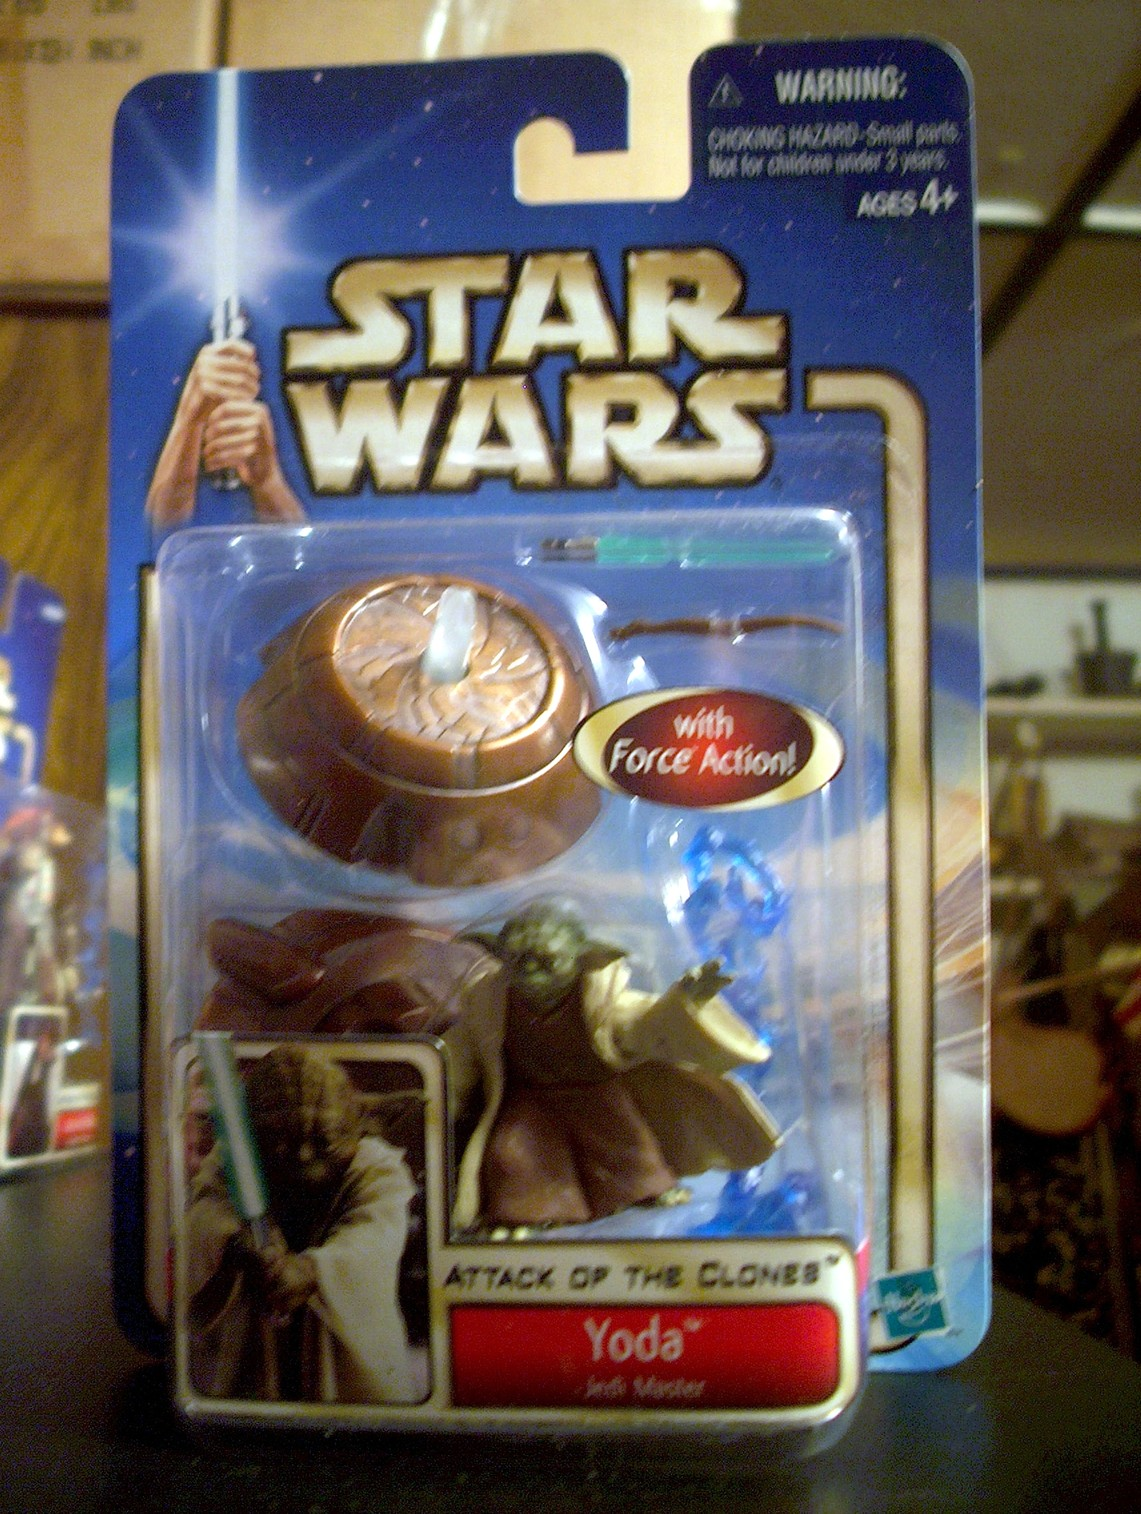 Yoda - Jedi Master - with Force Action!